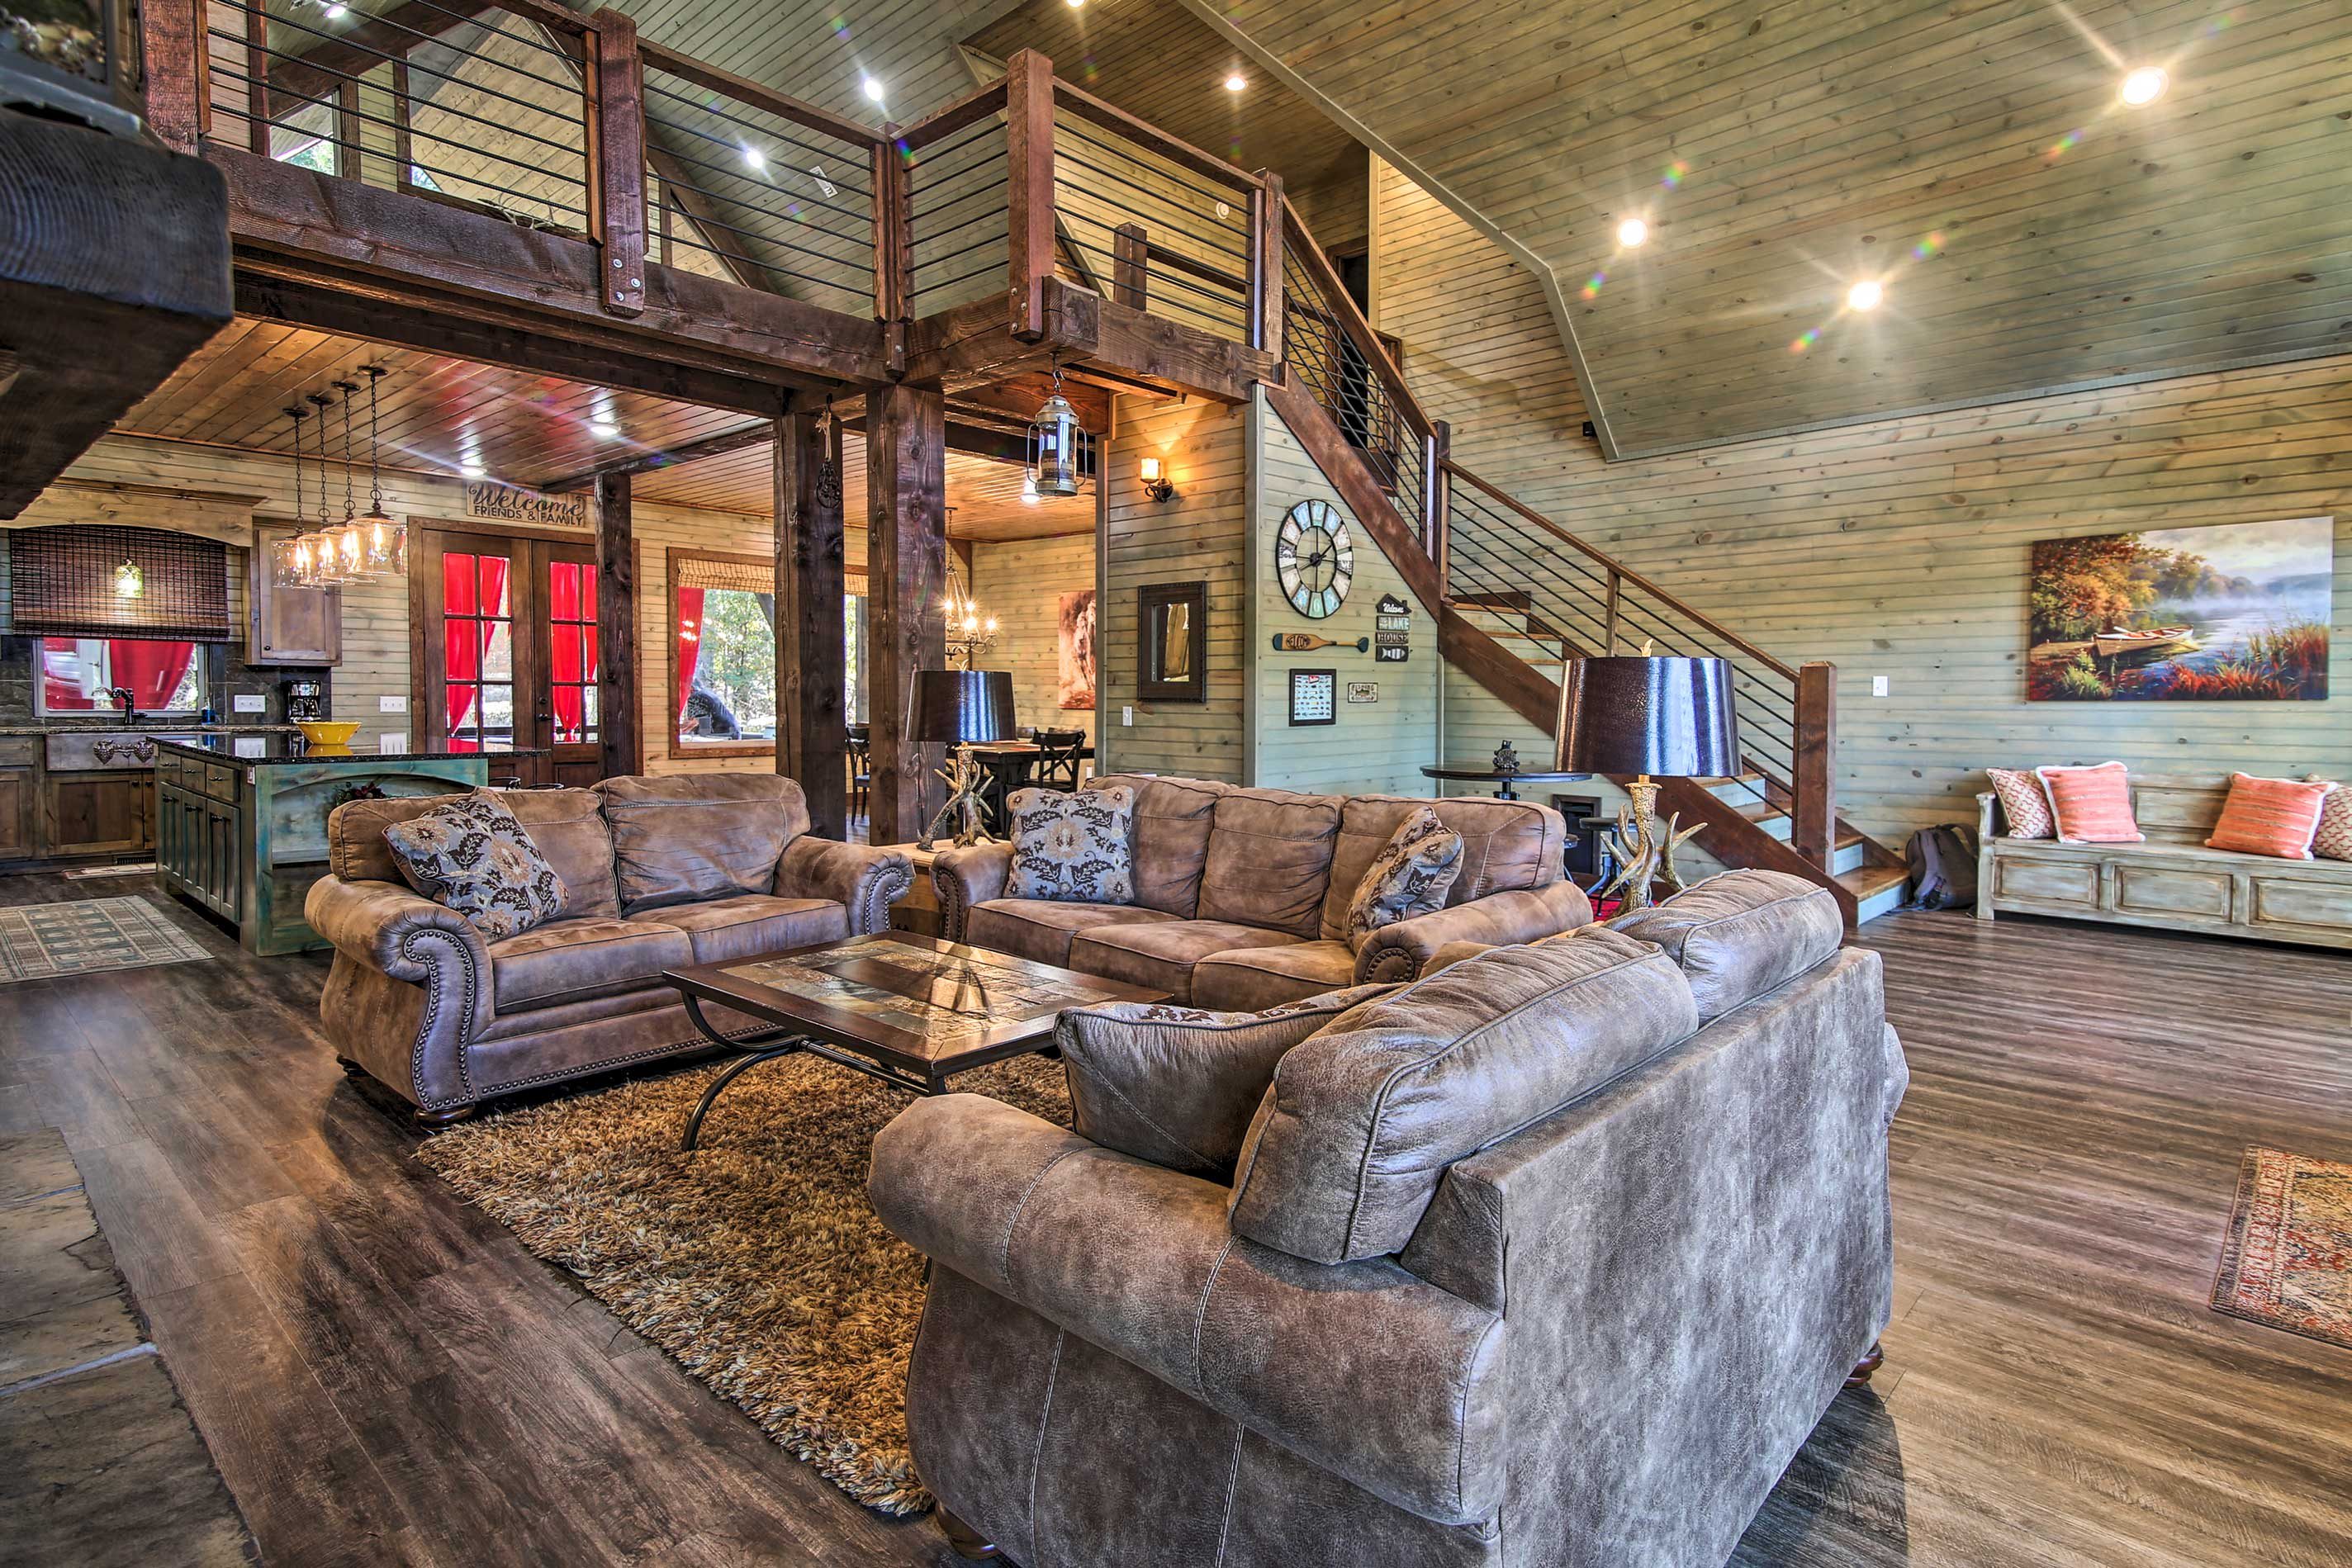 Vaulted ceilings and wooden beams create a warm, inviting interior.